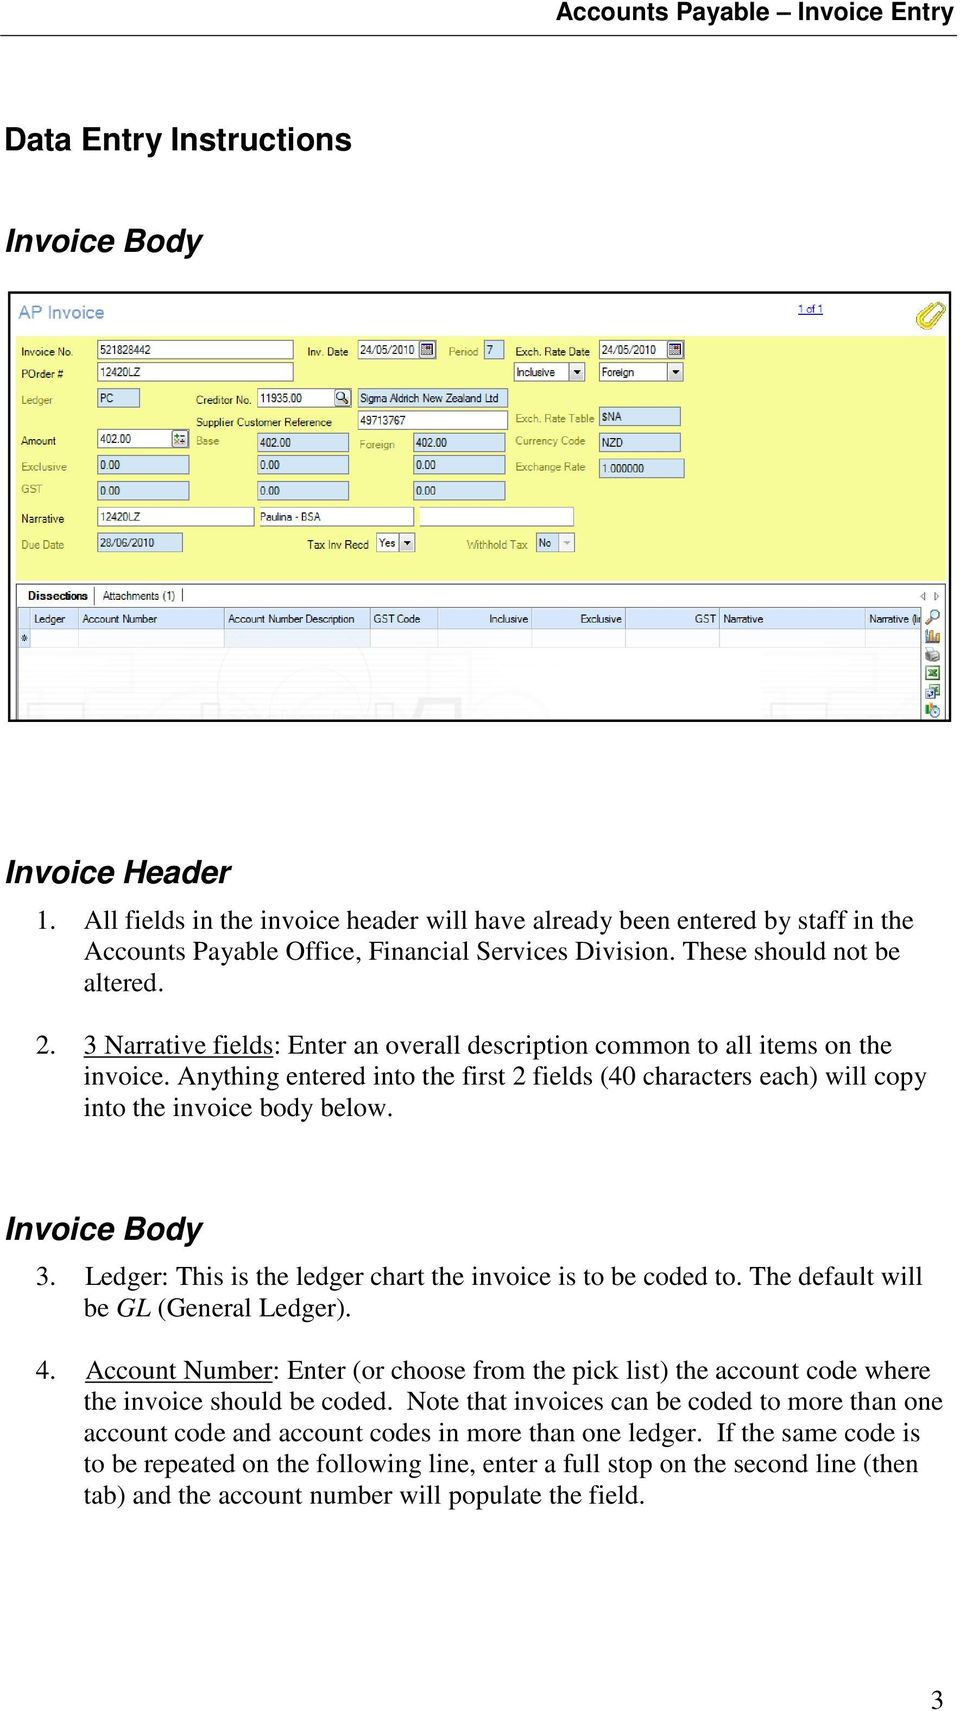 3 Narrative fields: Enter an overall description common to all items on the invoice. Anything entered into the first 2 fields (40 characters each) will copy into the invoice body below.